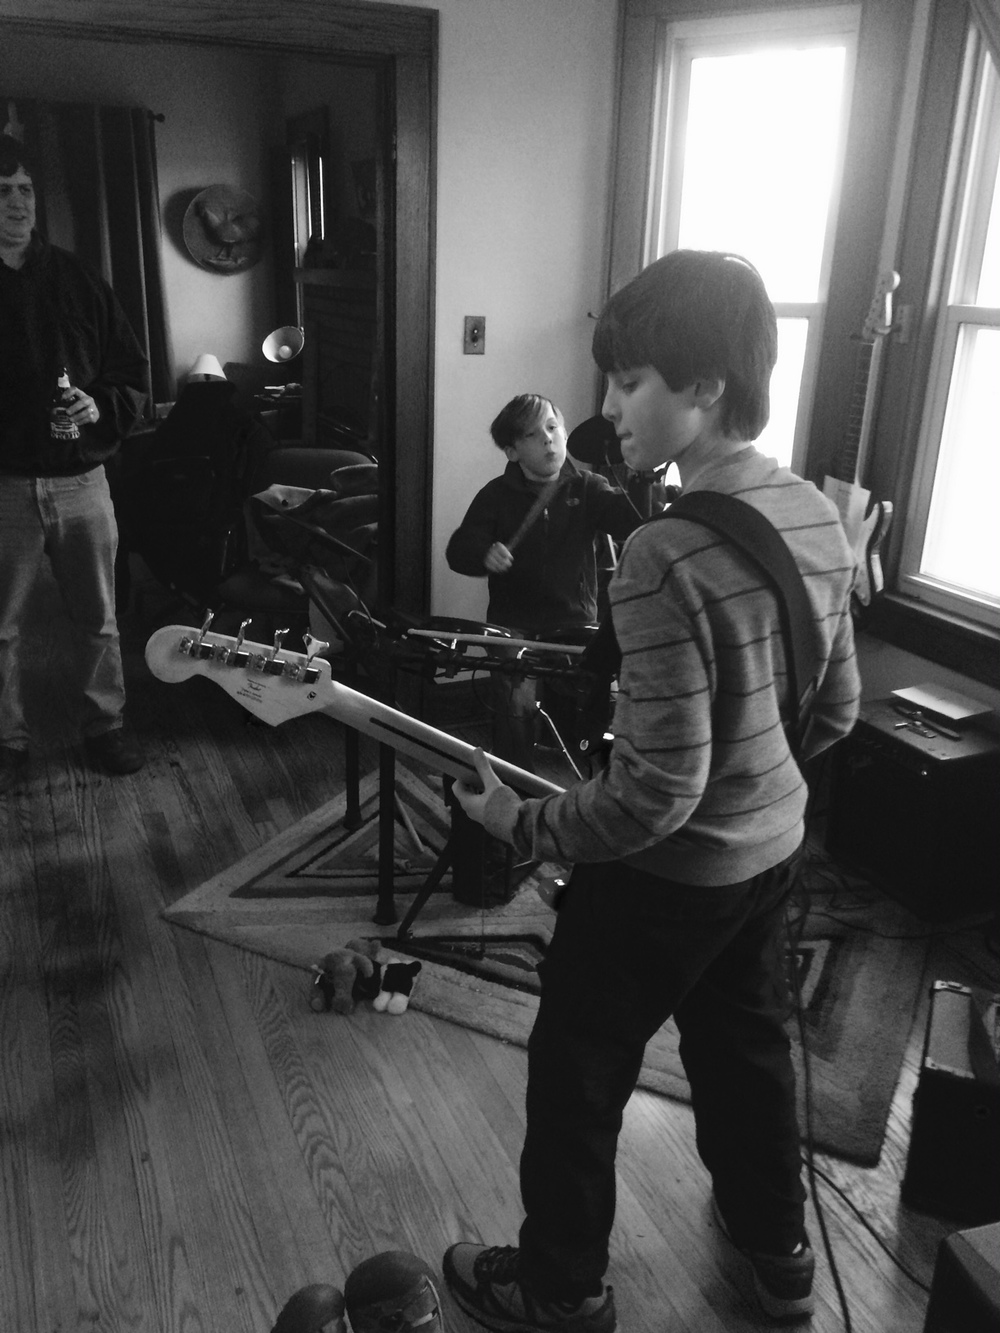 (From left to right)Brendan Donnell Pitz (drums) and Sam Pulsipher (bass), photo by Michael Pitz